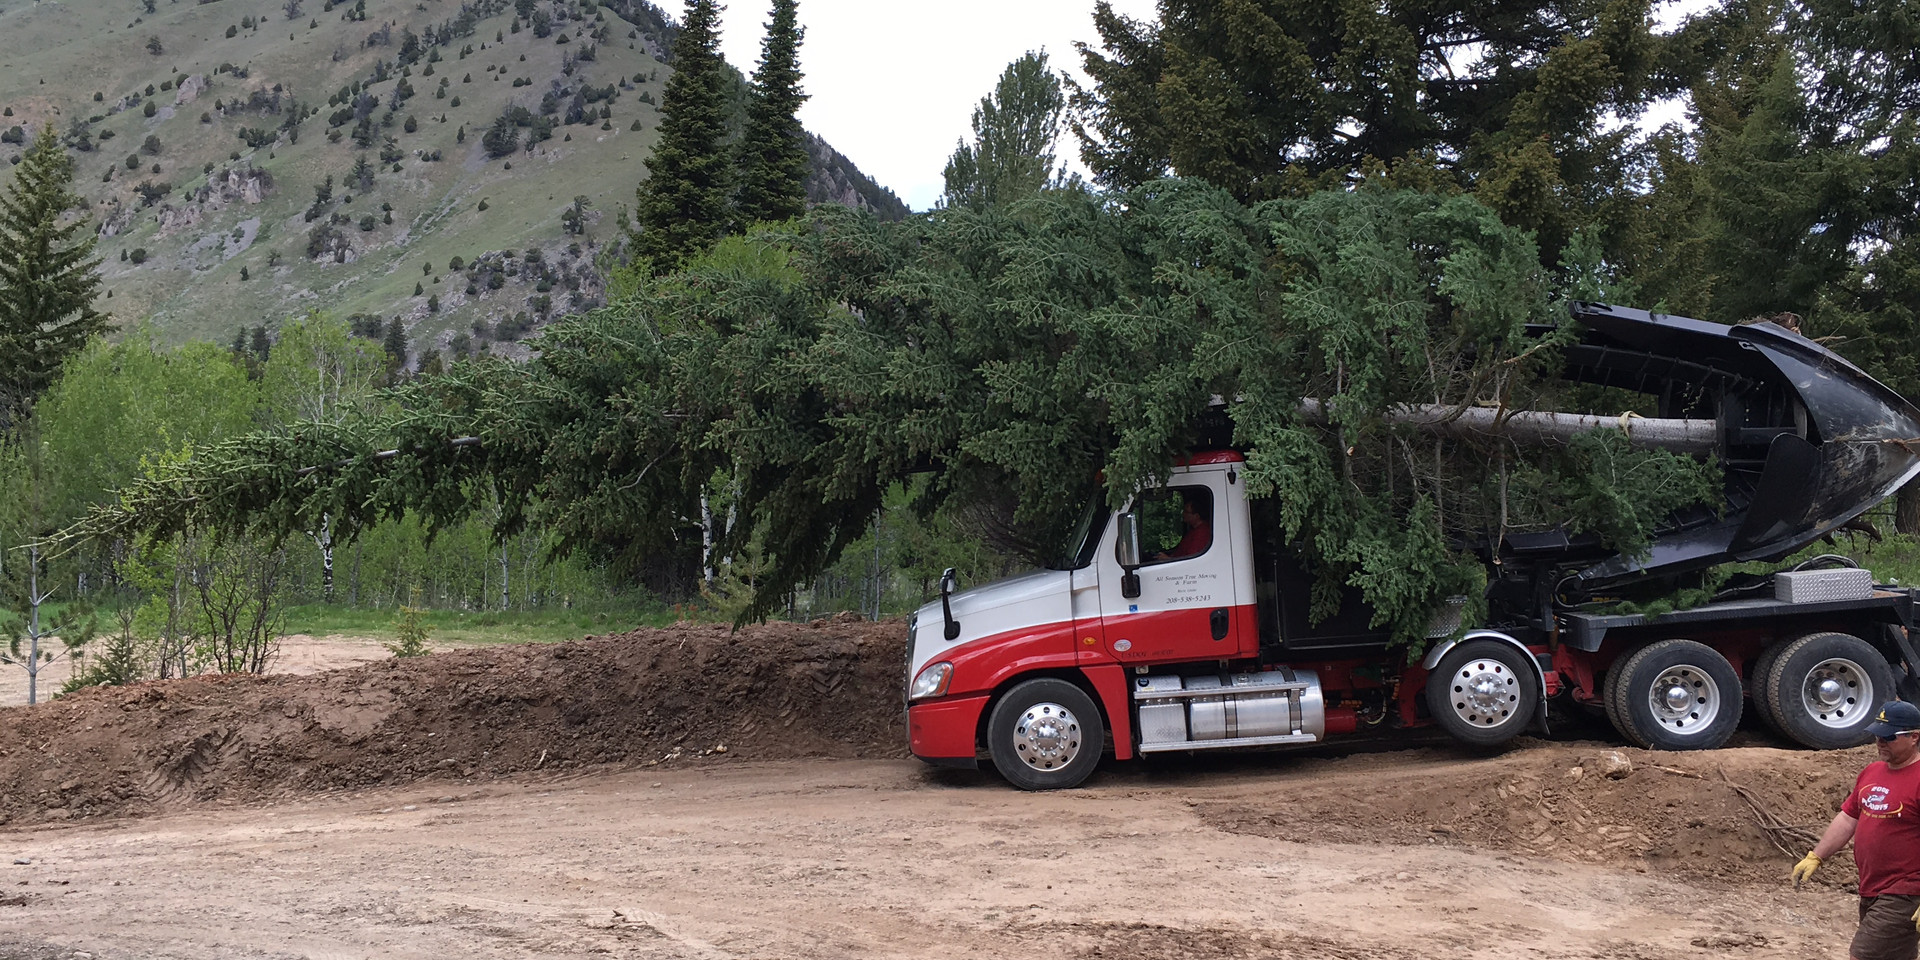 A very large tree on our spade truck